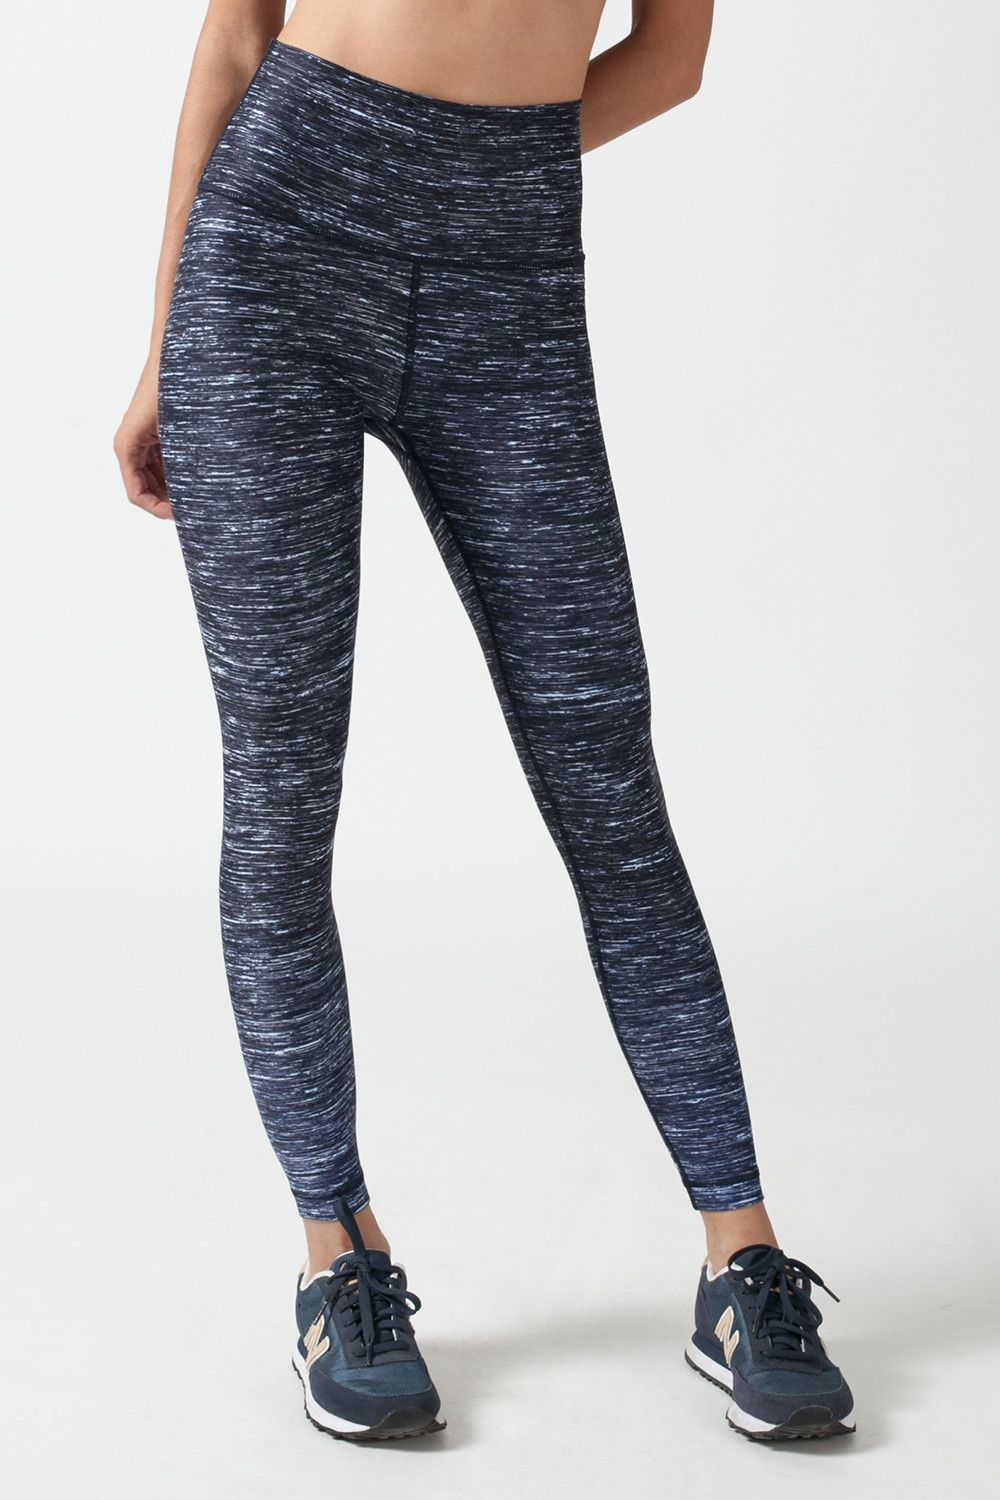 ELECTRIC SNOW HIGH WAISTED LEGGINGS